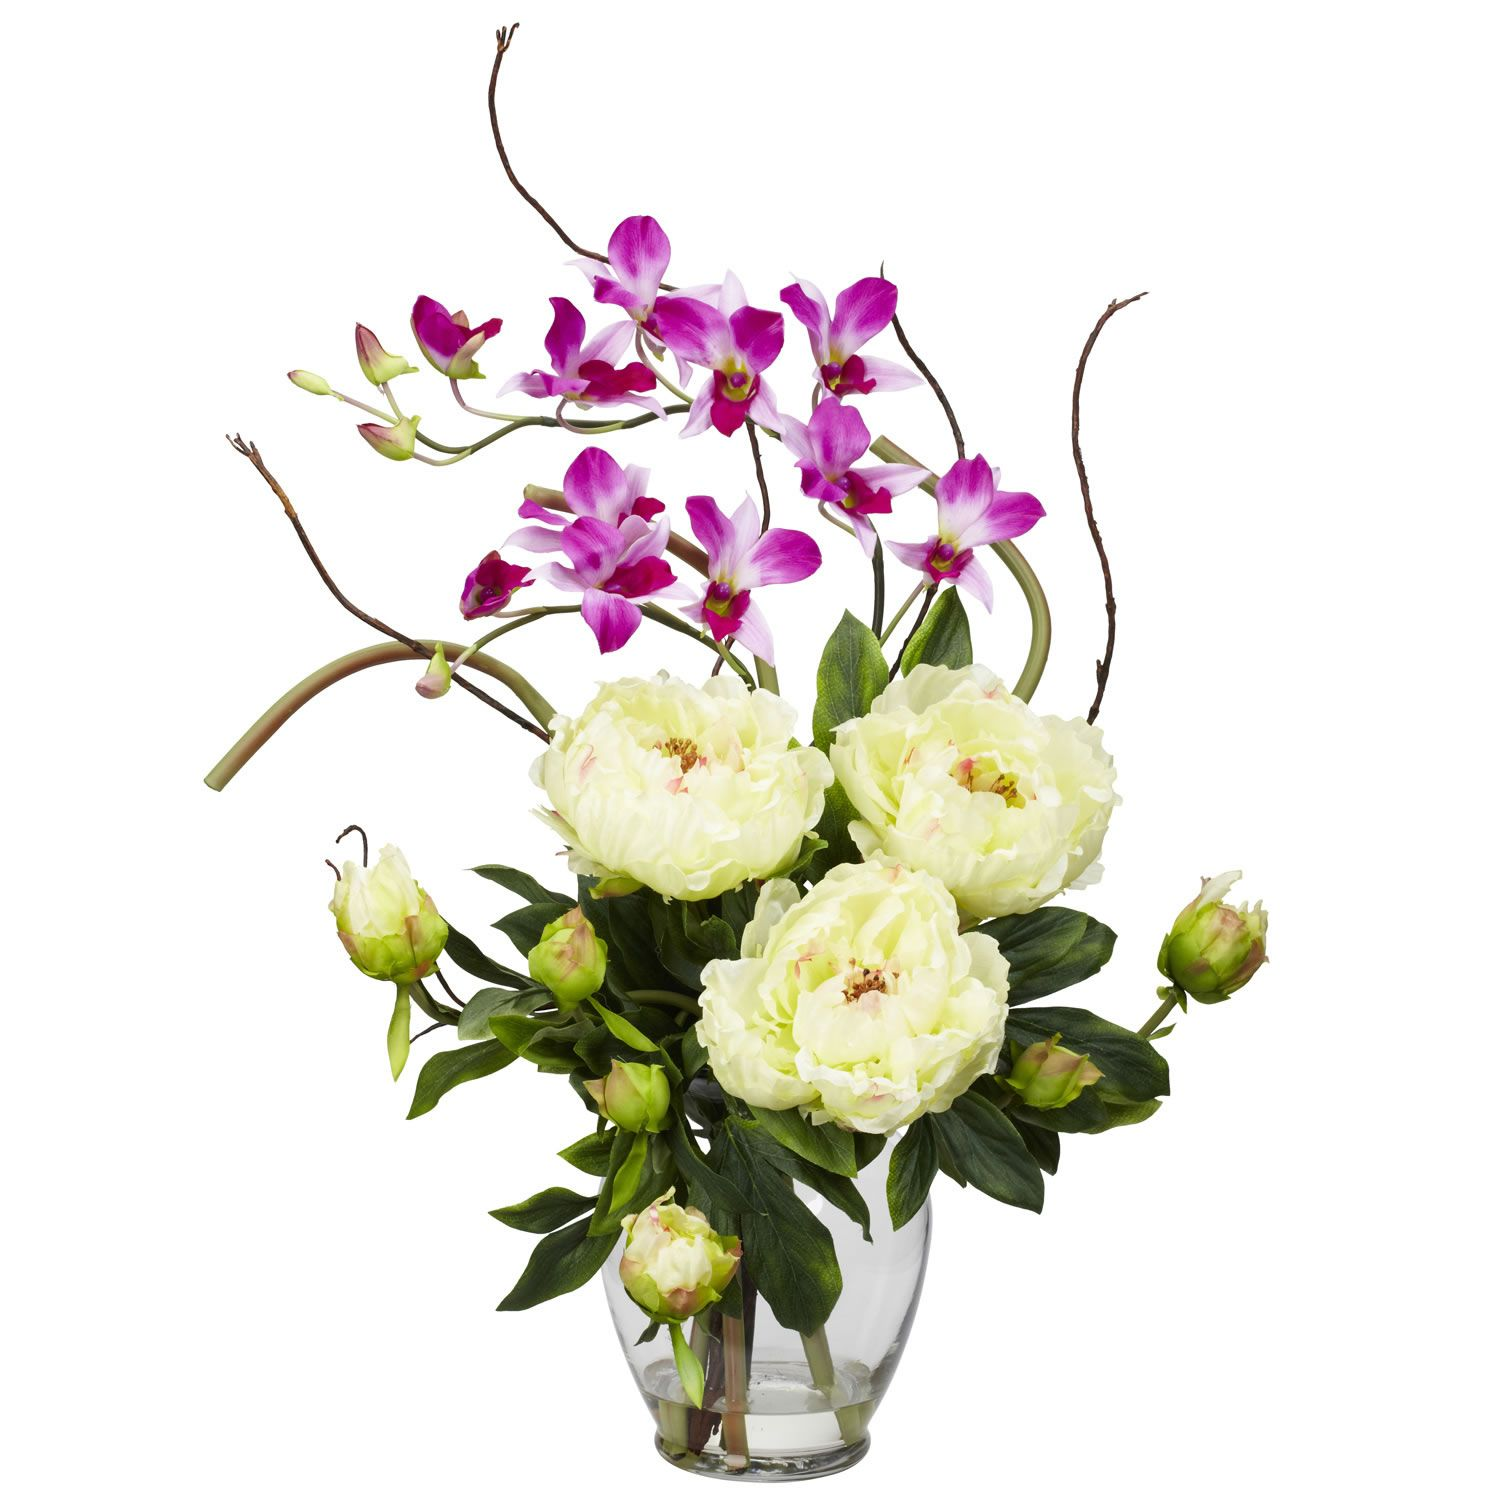 Silk flower arrangements roll over product image to zoom Floral creations